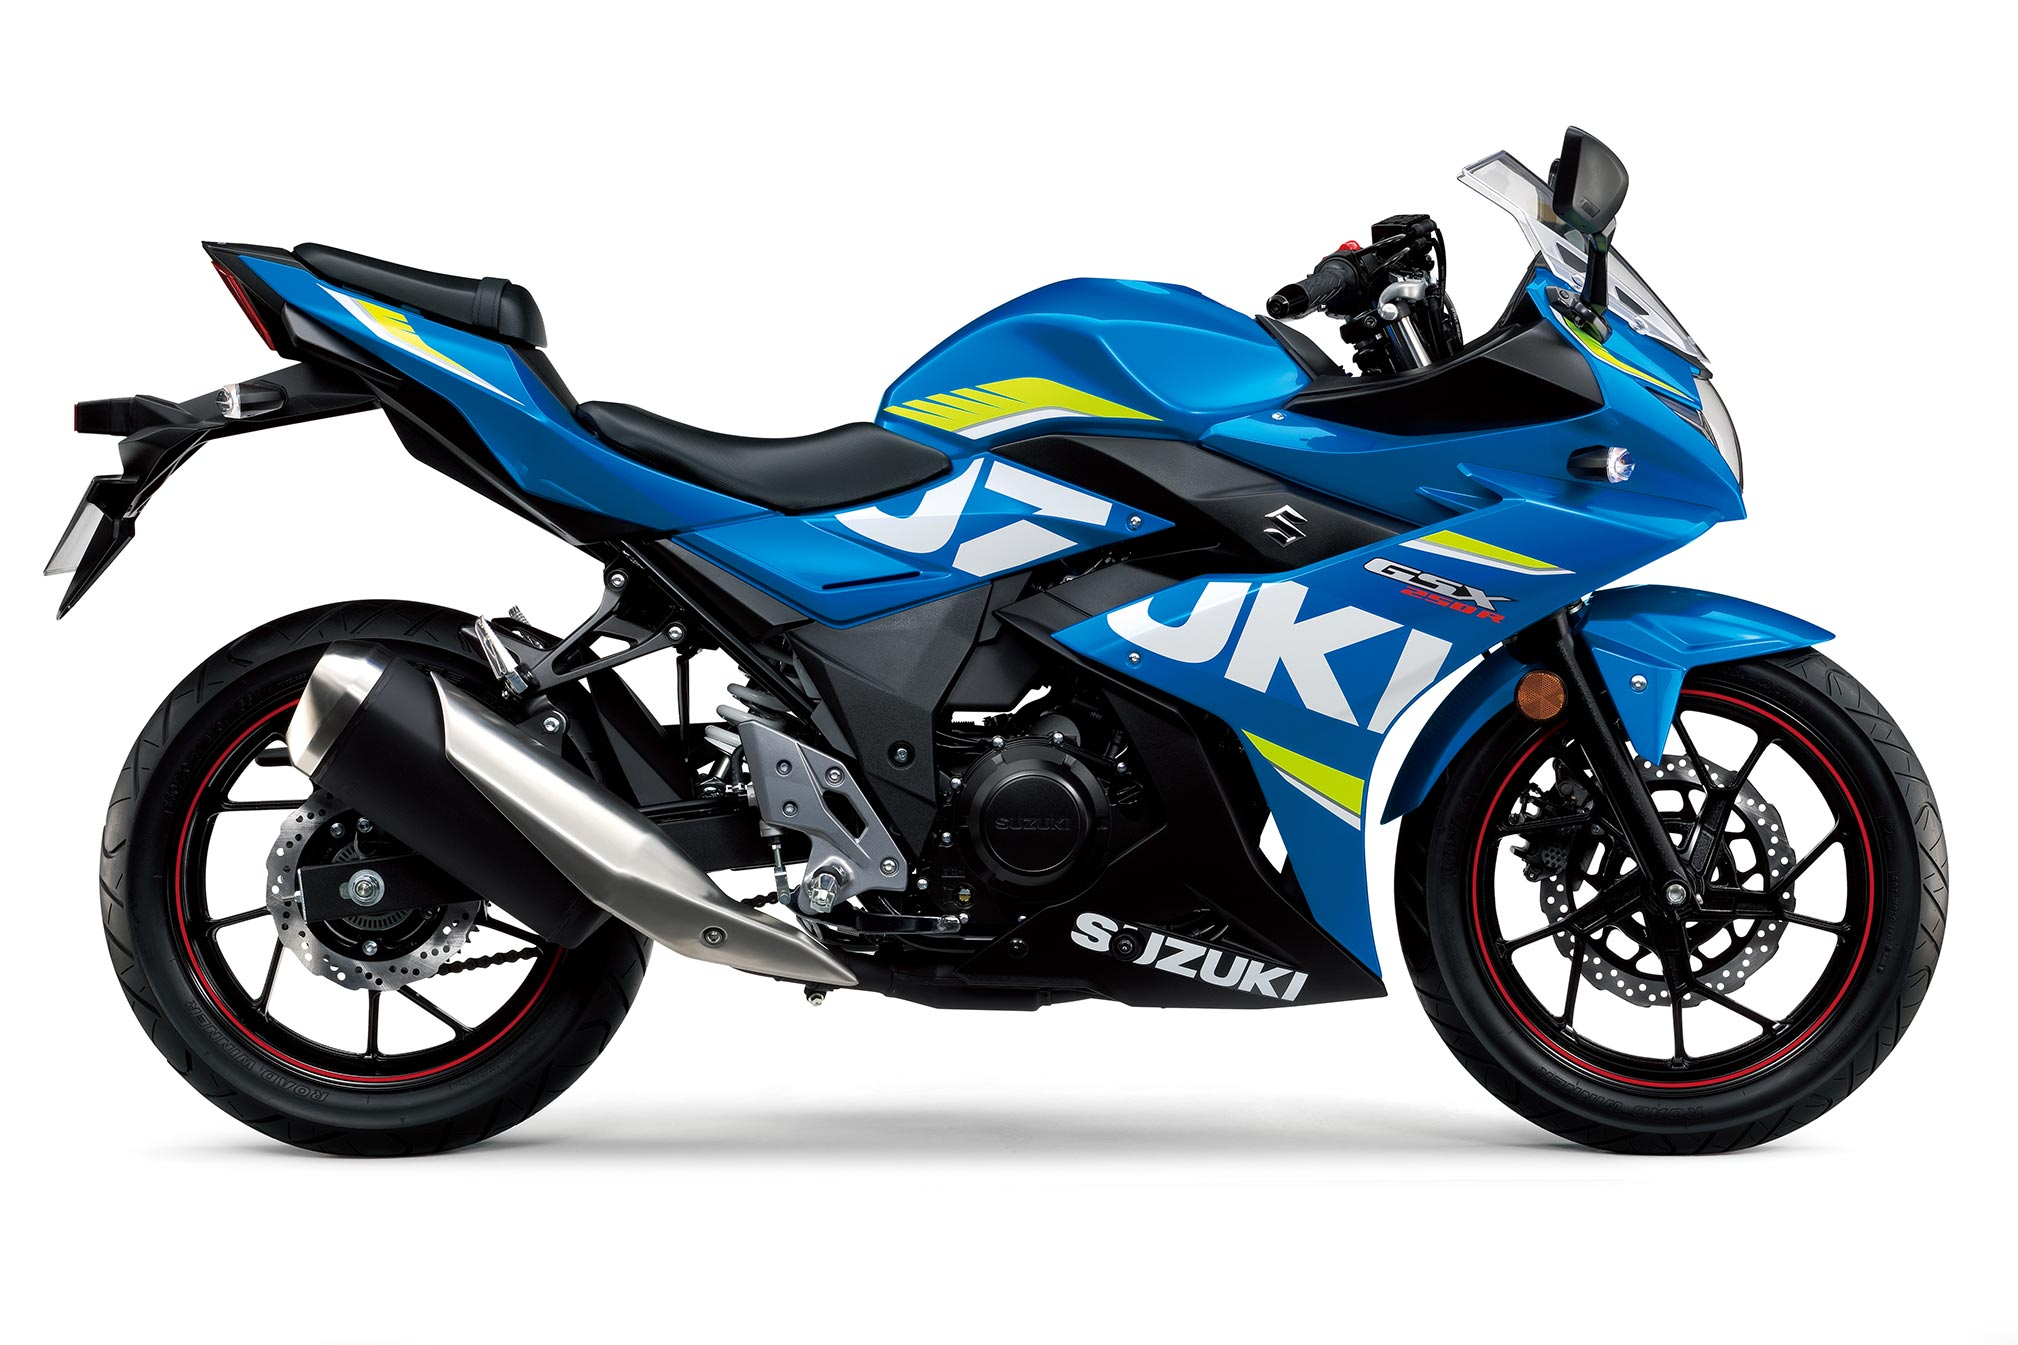 2018 suzuki gsx250r review. Black Bedroom Furniture Sets. Home Design Ideas